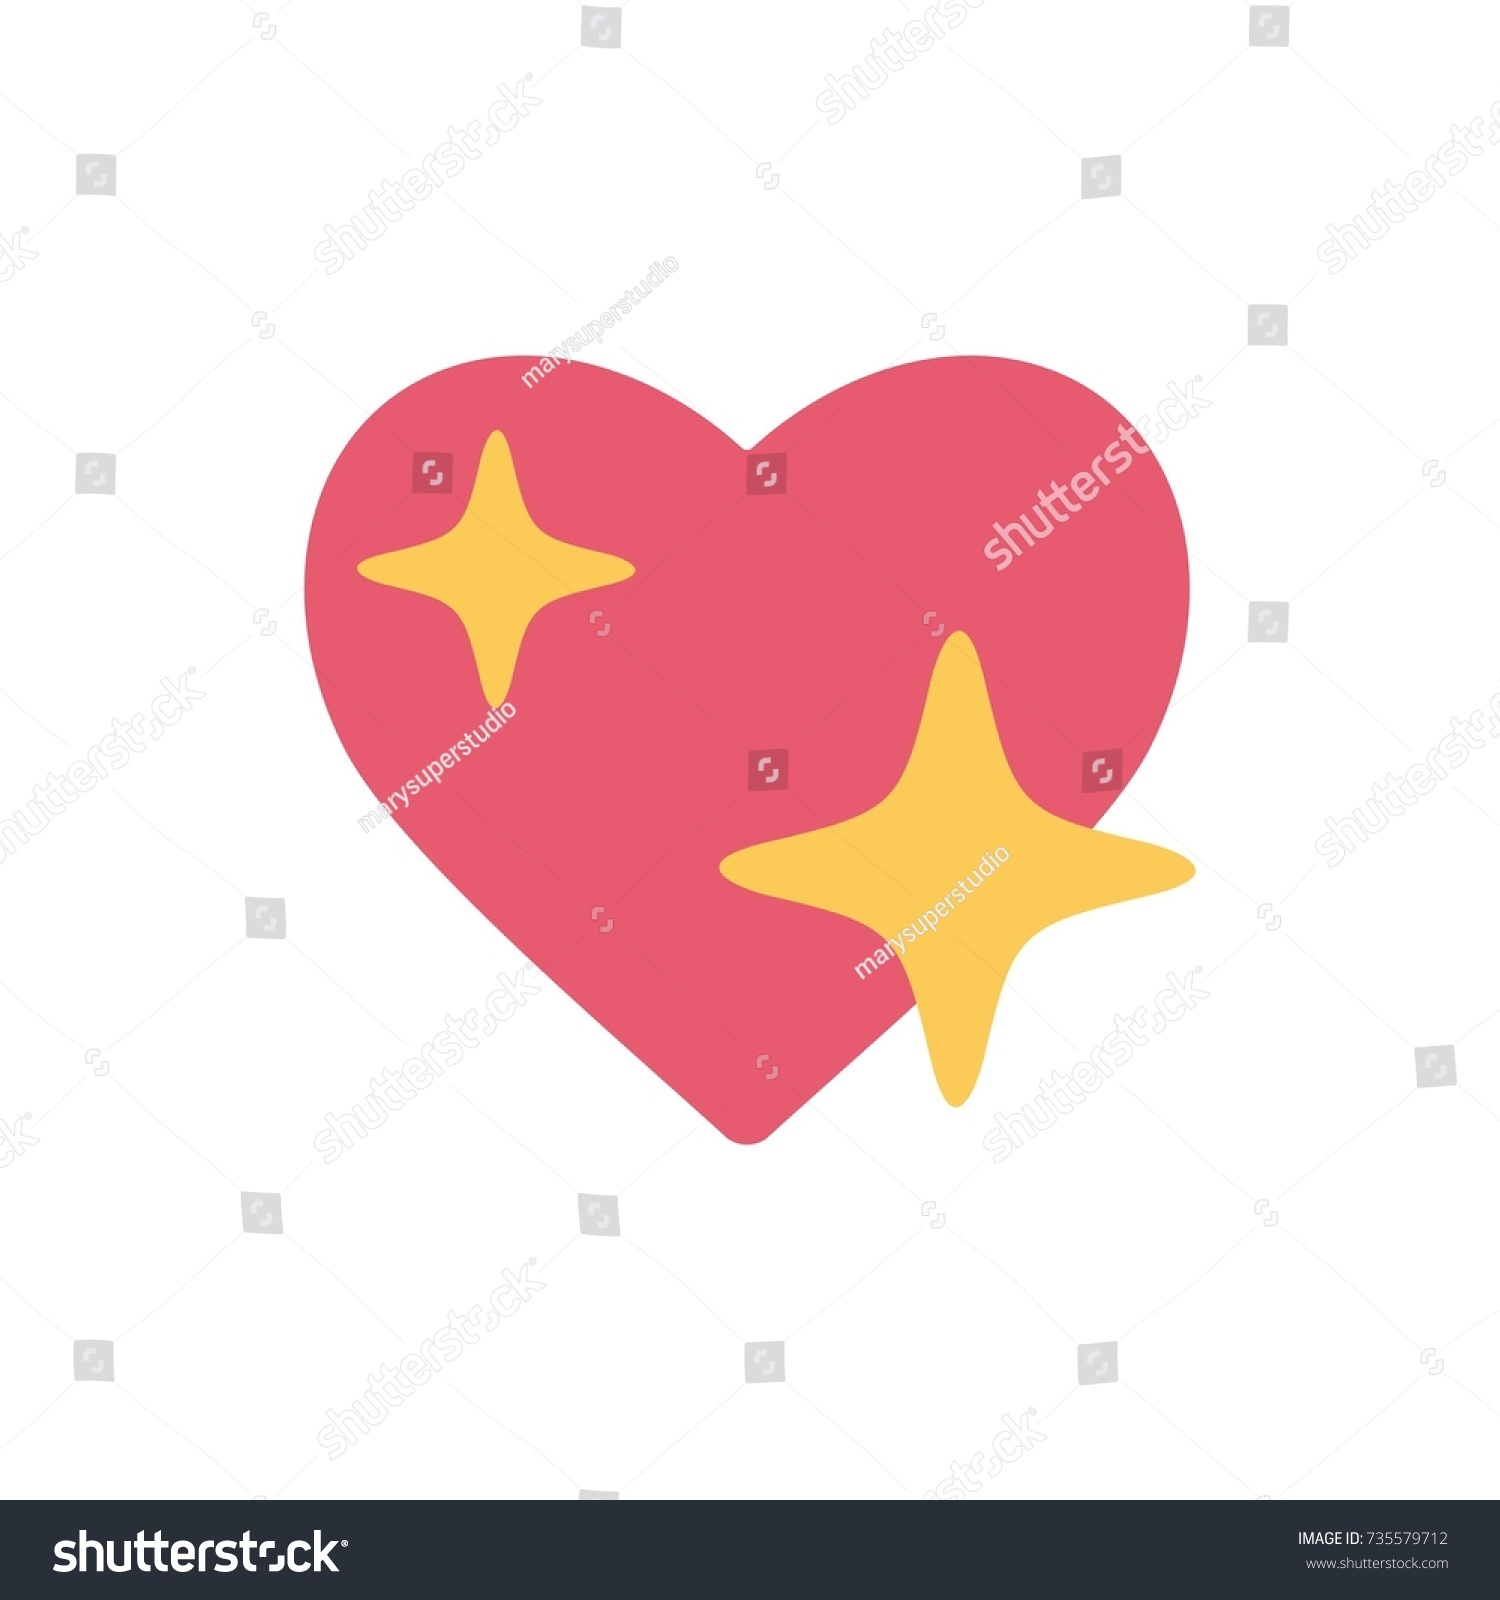 Iphone Shine Heart Emoji Sign Icon Stock Vector Royalty Free